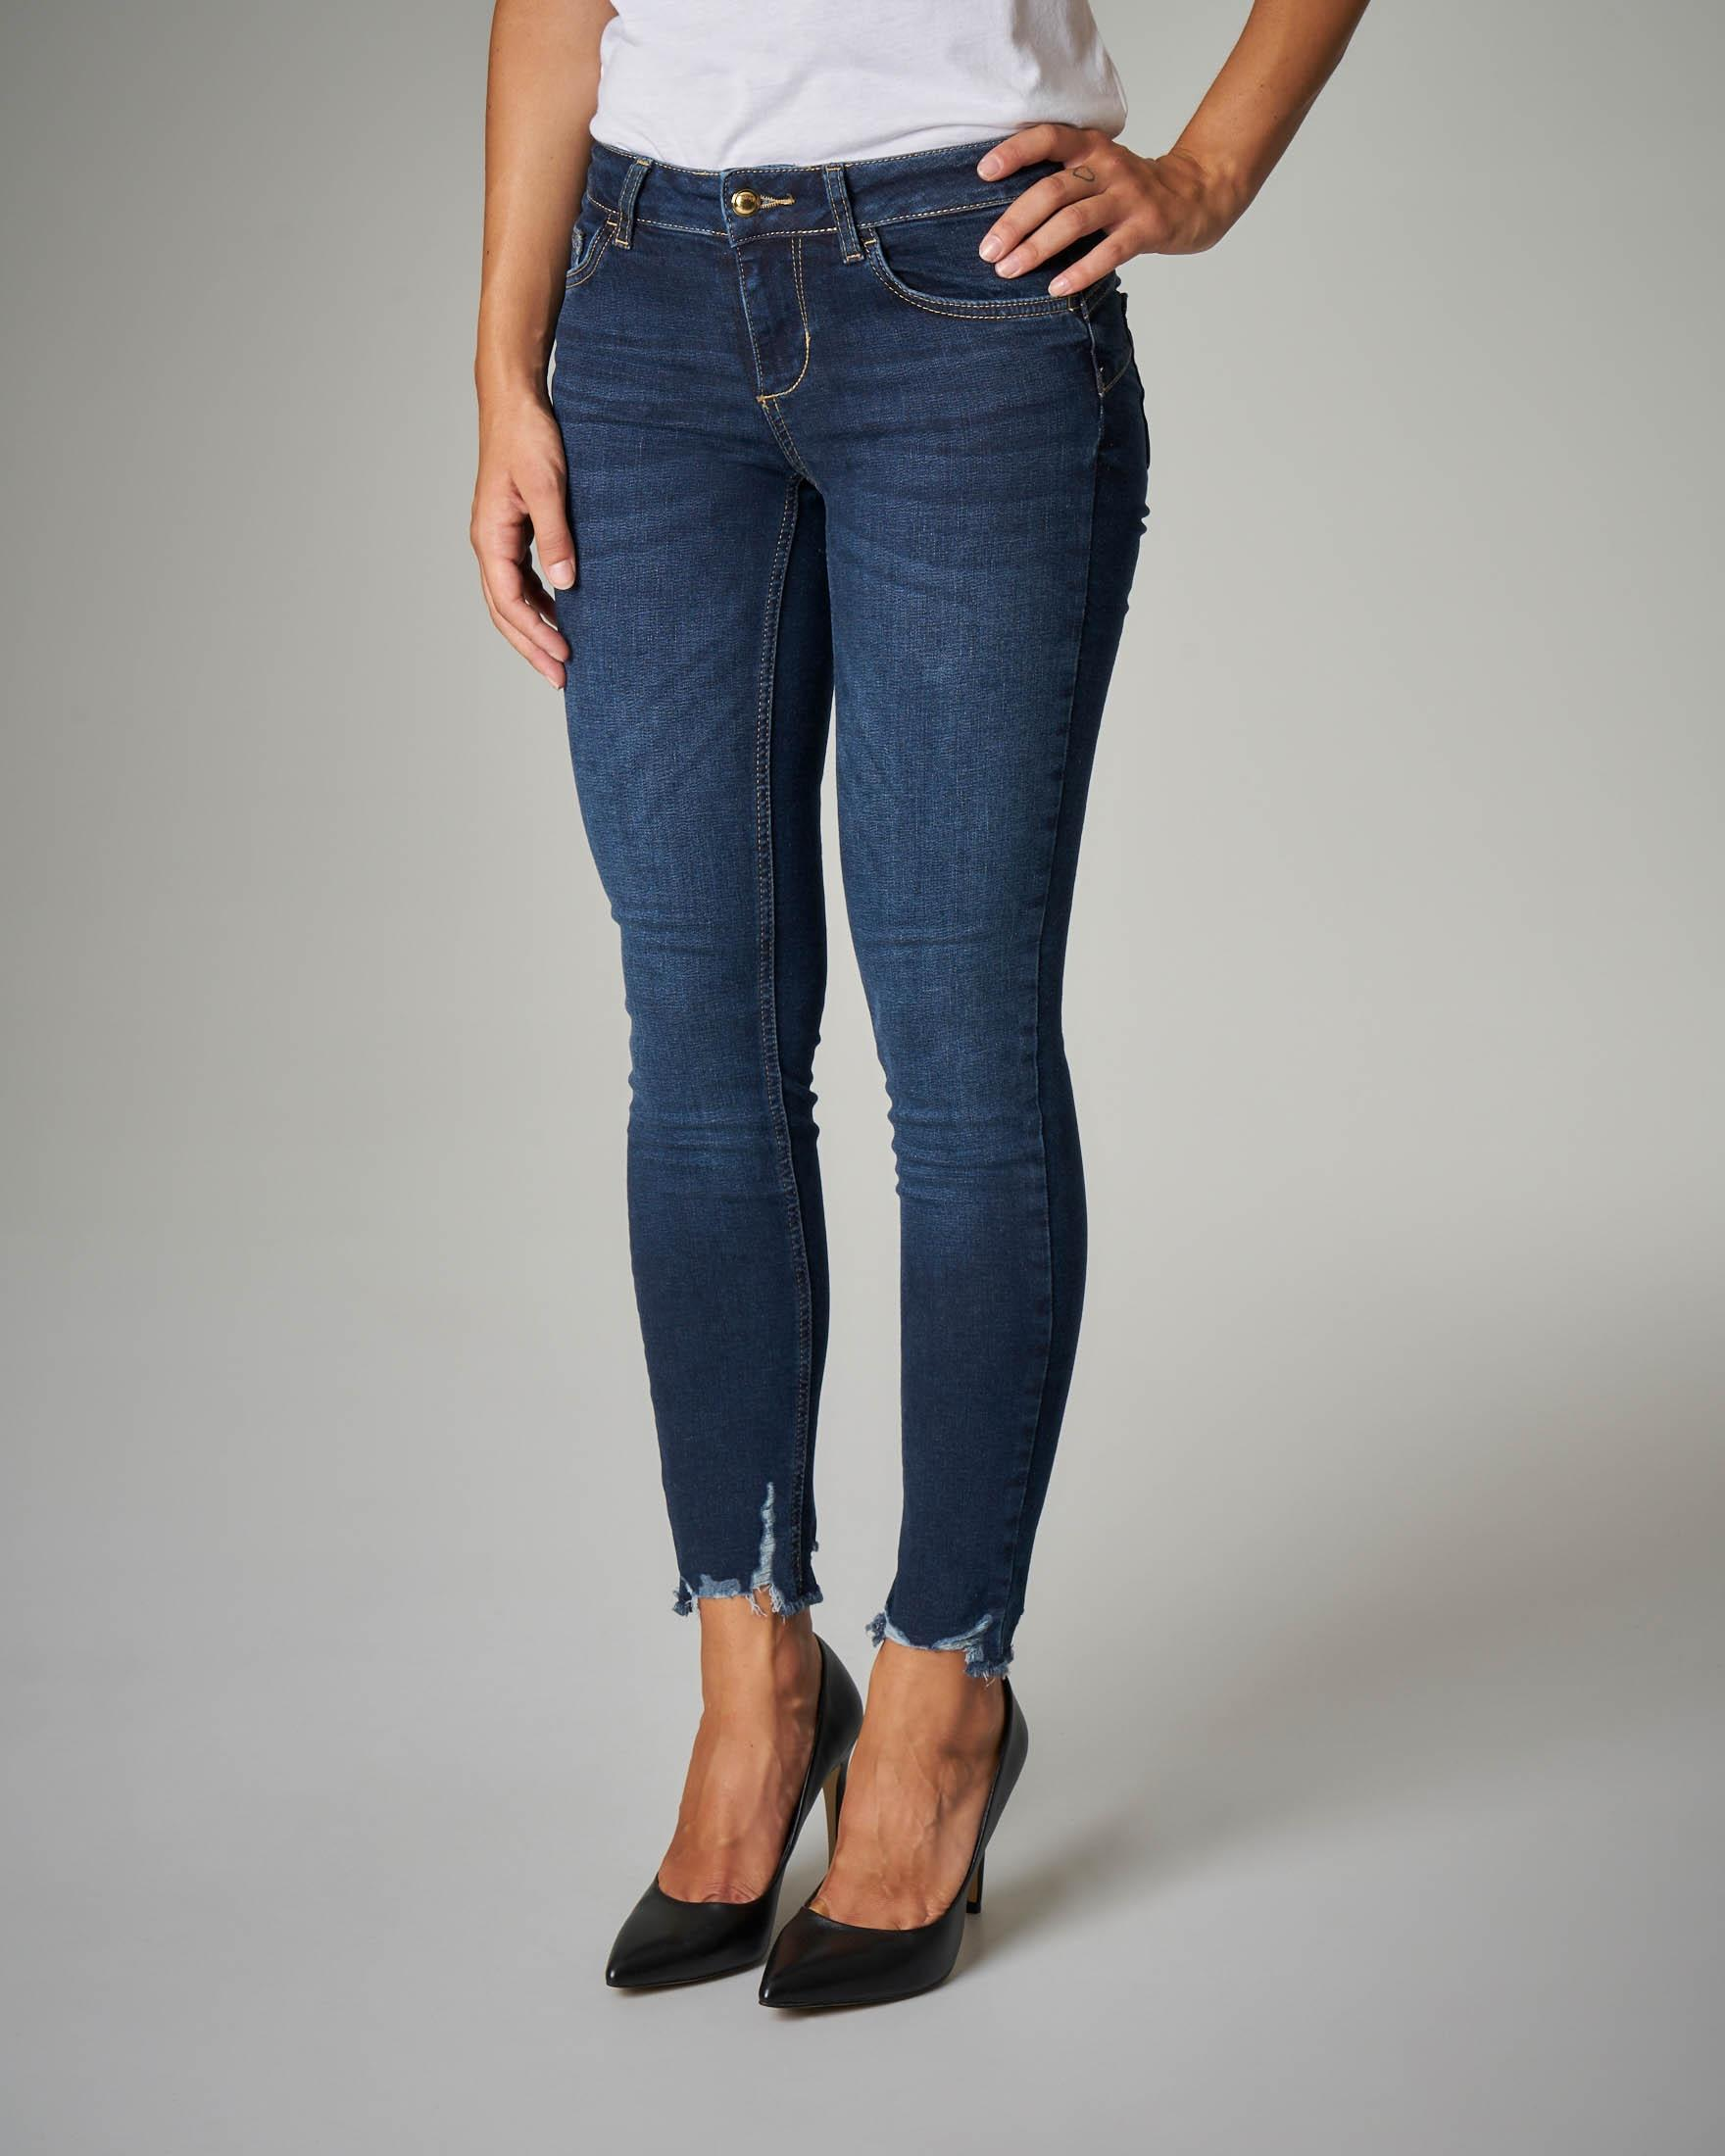 Jeans skinny Bottom Up con orlo sfrangiato